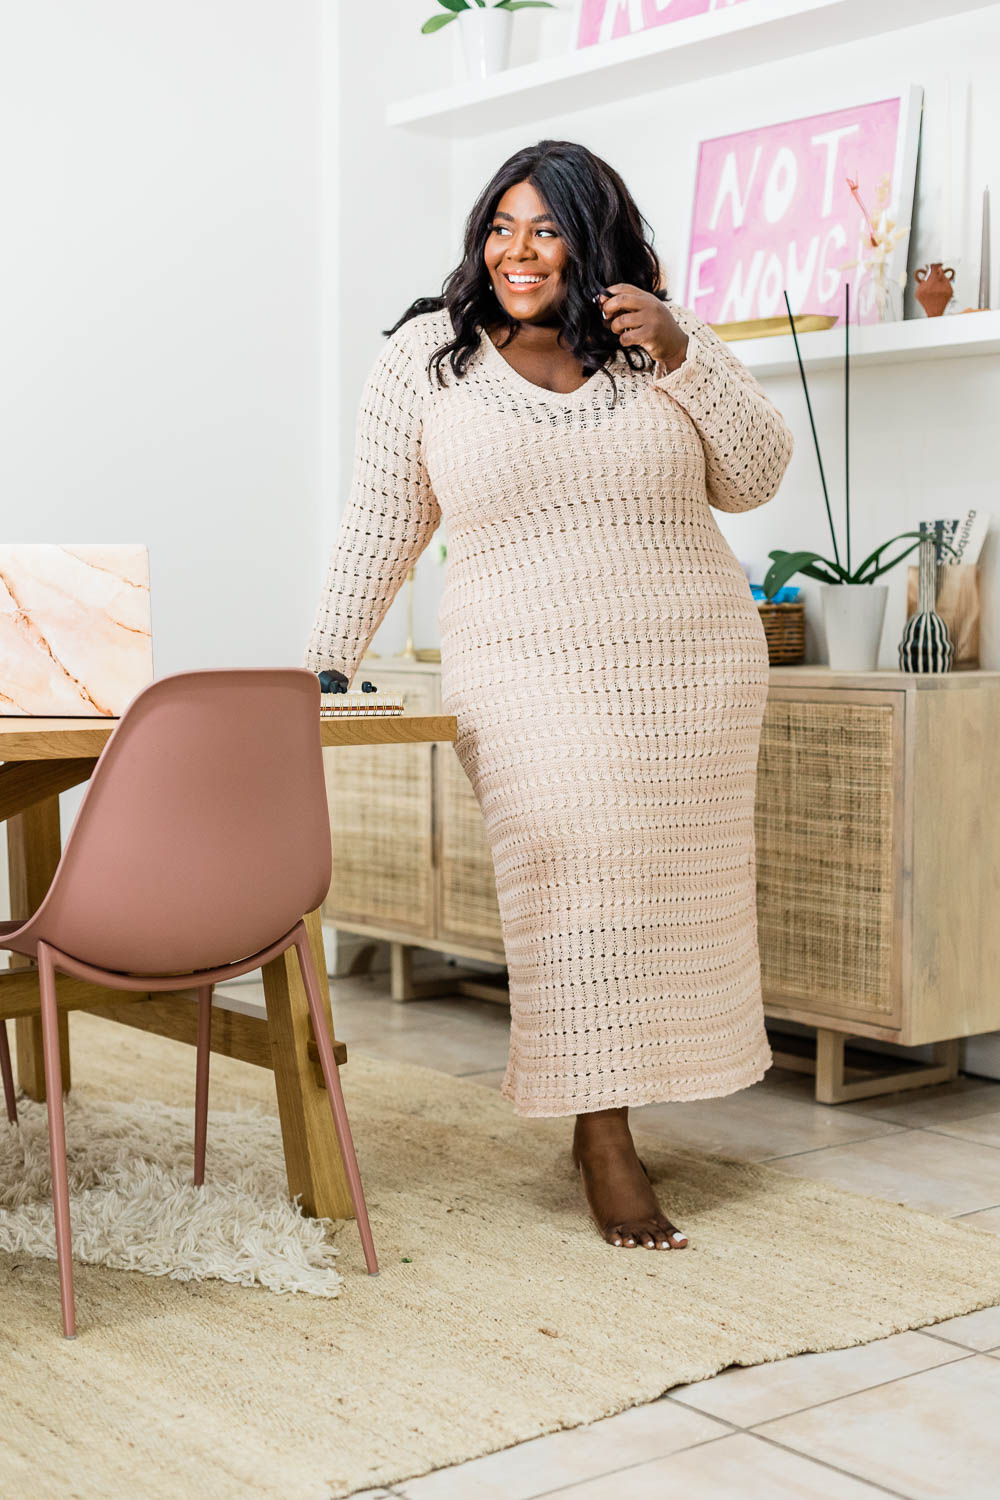 Nordstrom, AFRM Crotchet Dress, Home Office Decor, Amazon Essentials, Content Creator Tools, Amazon Live, Thamarr Musings of a Curvy Lady, Amazon Influencer Essentials, Amazon Echo Buds